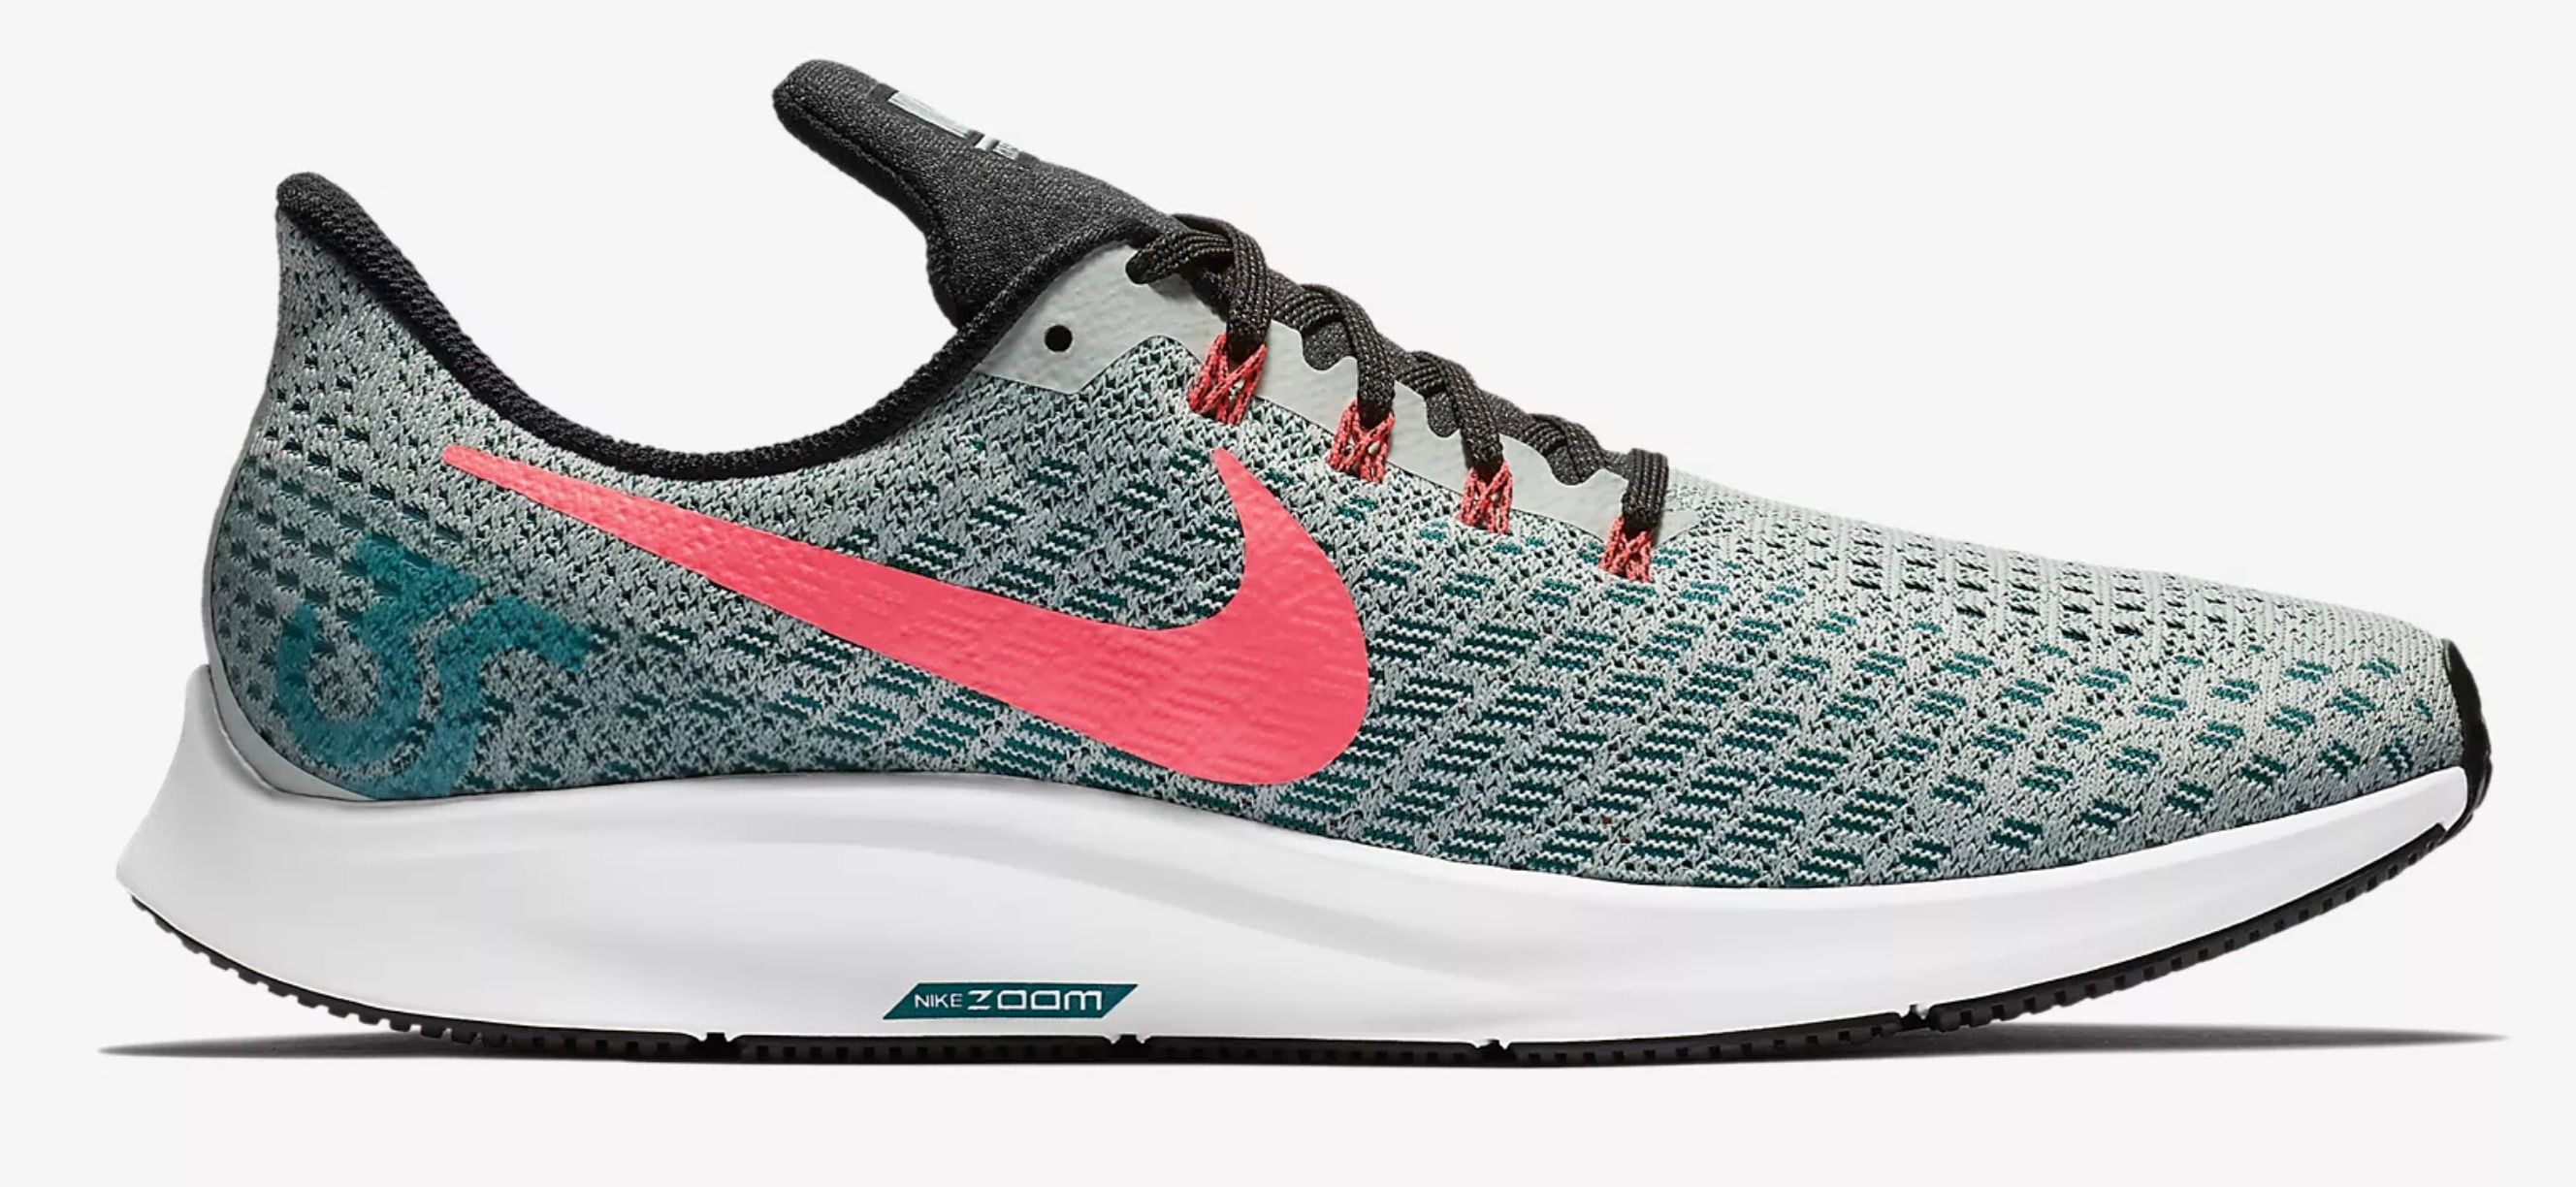 You can save 30% on this Nike running gear today